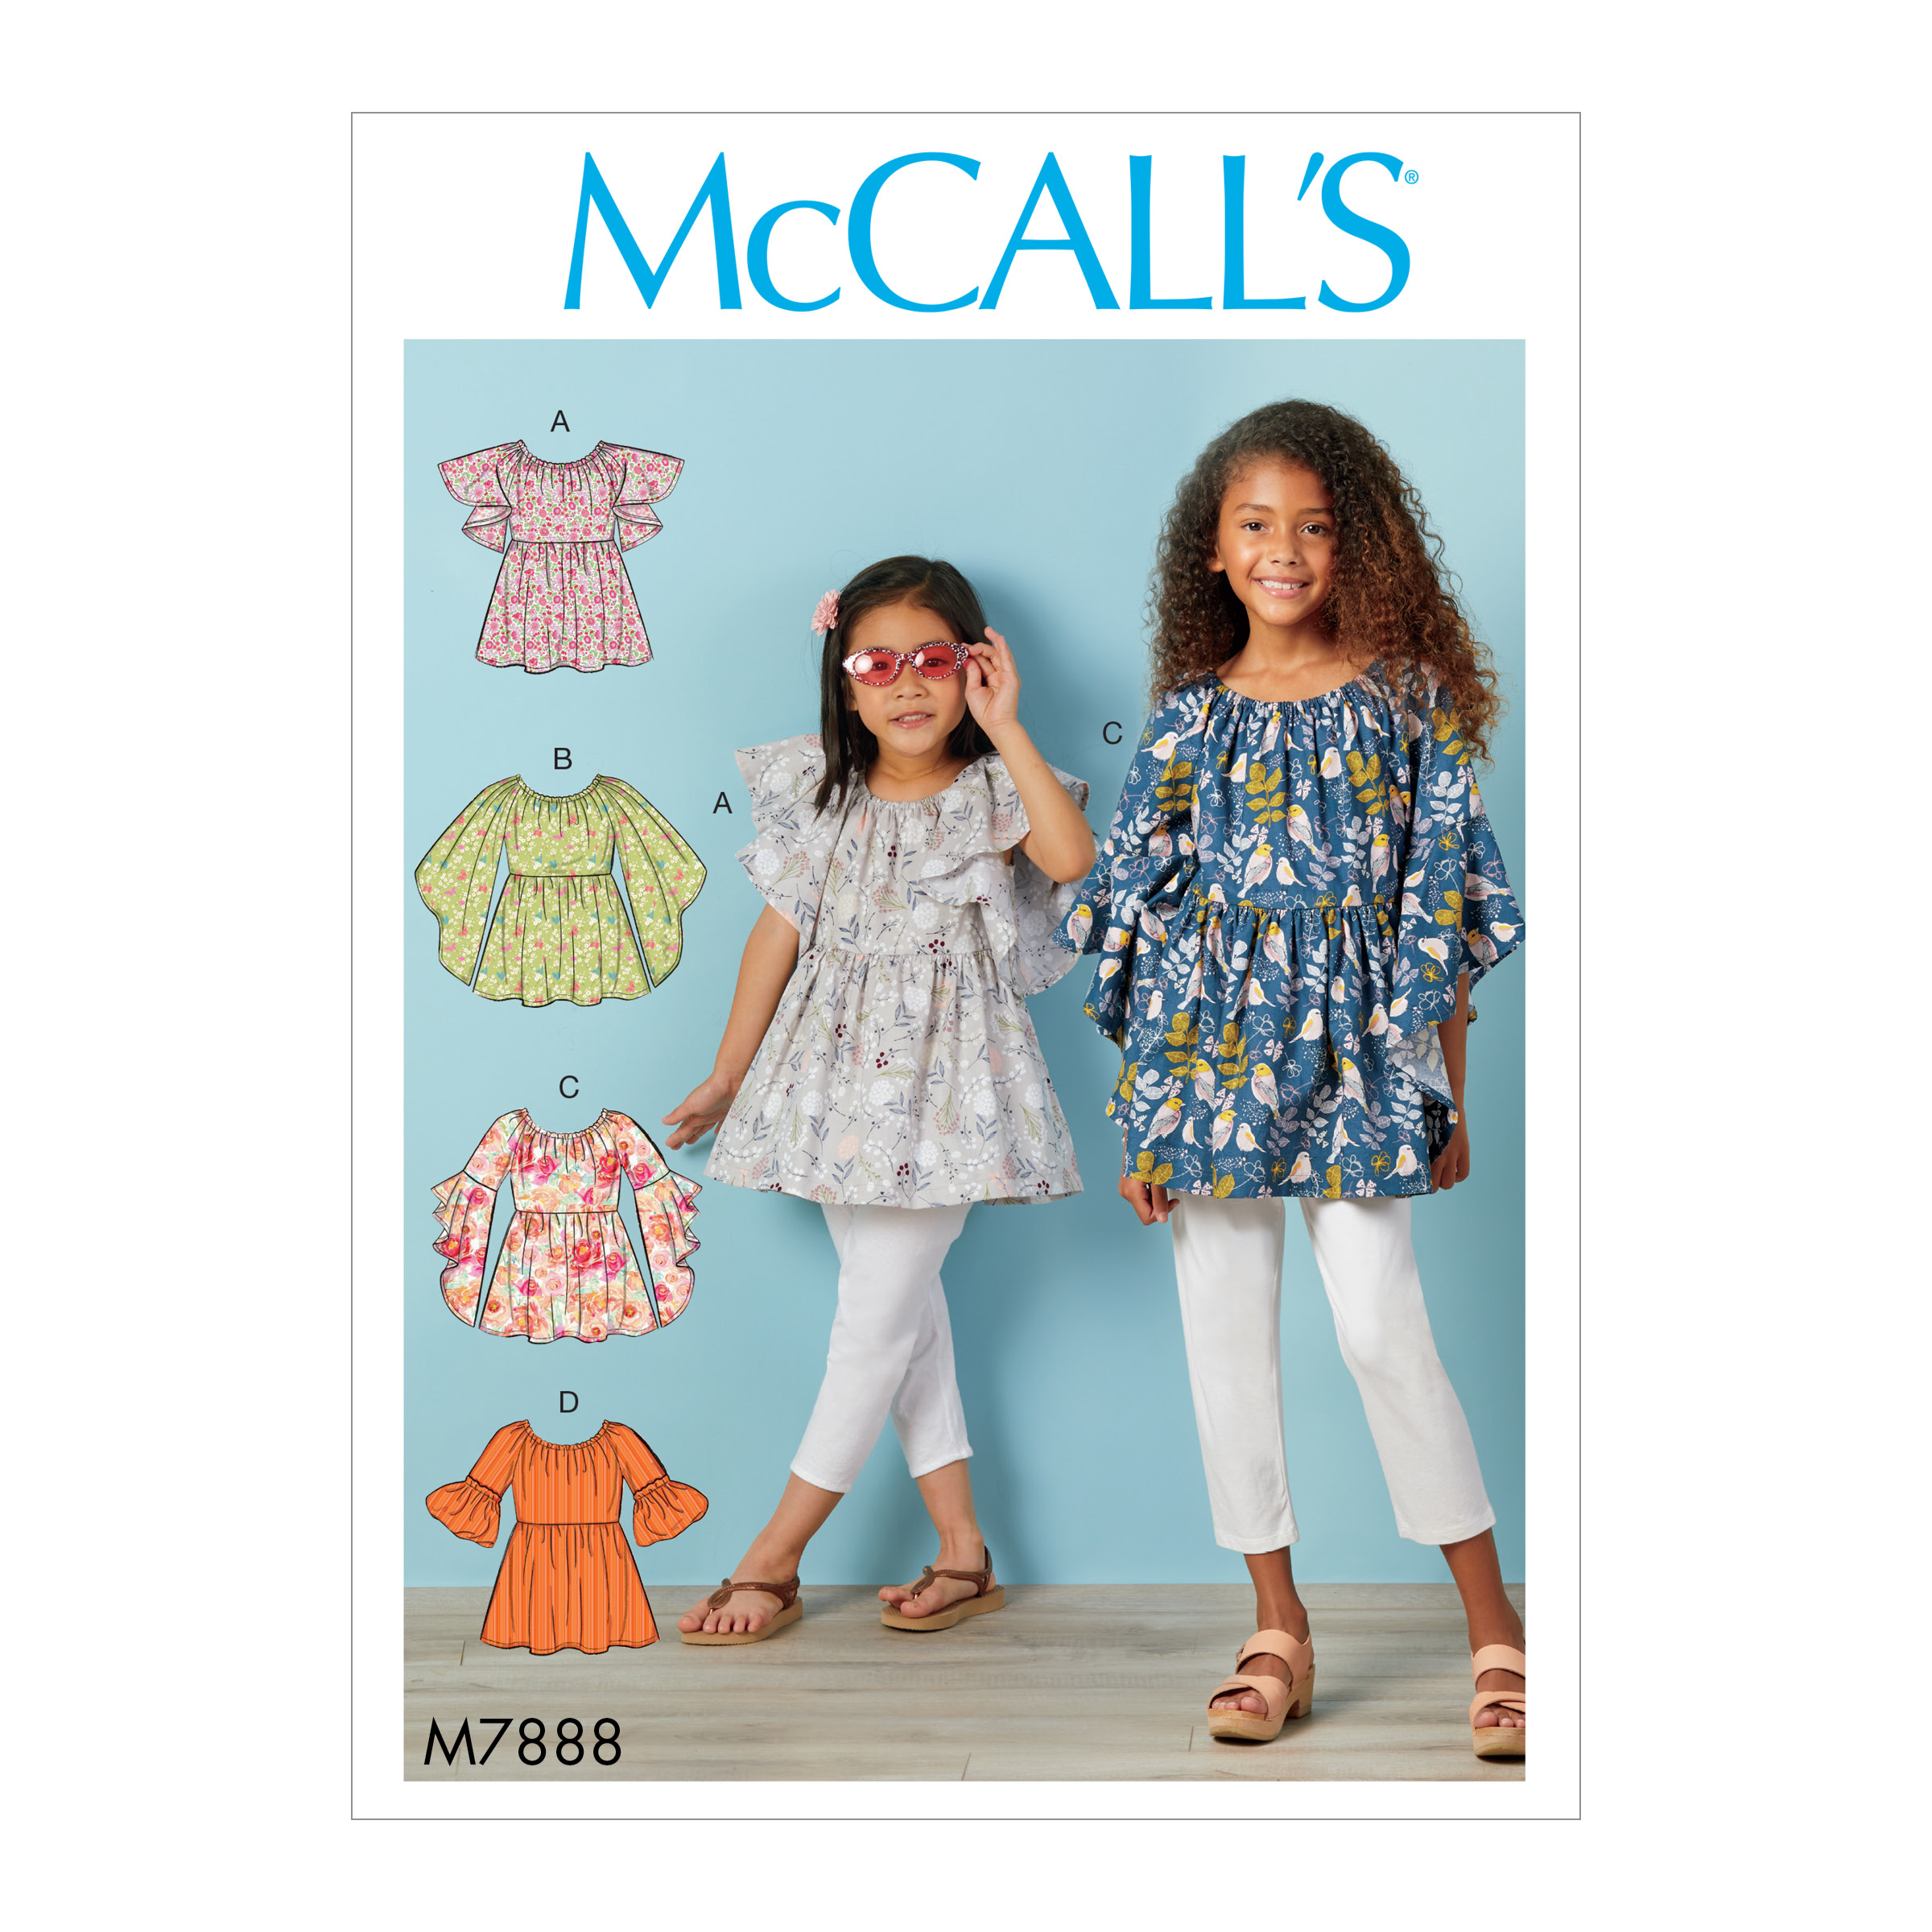 Image result for mccalls 7888